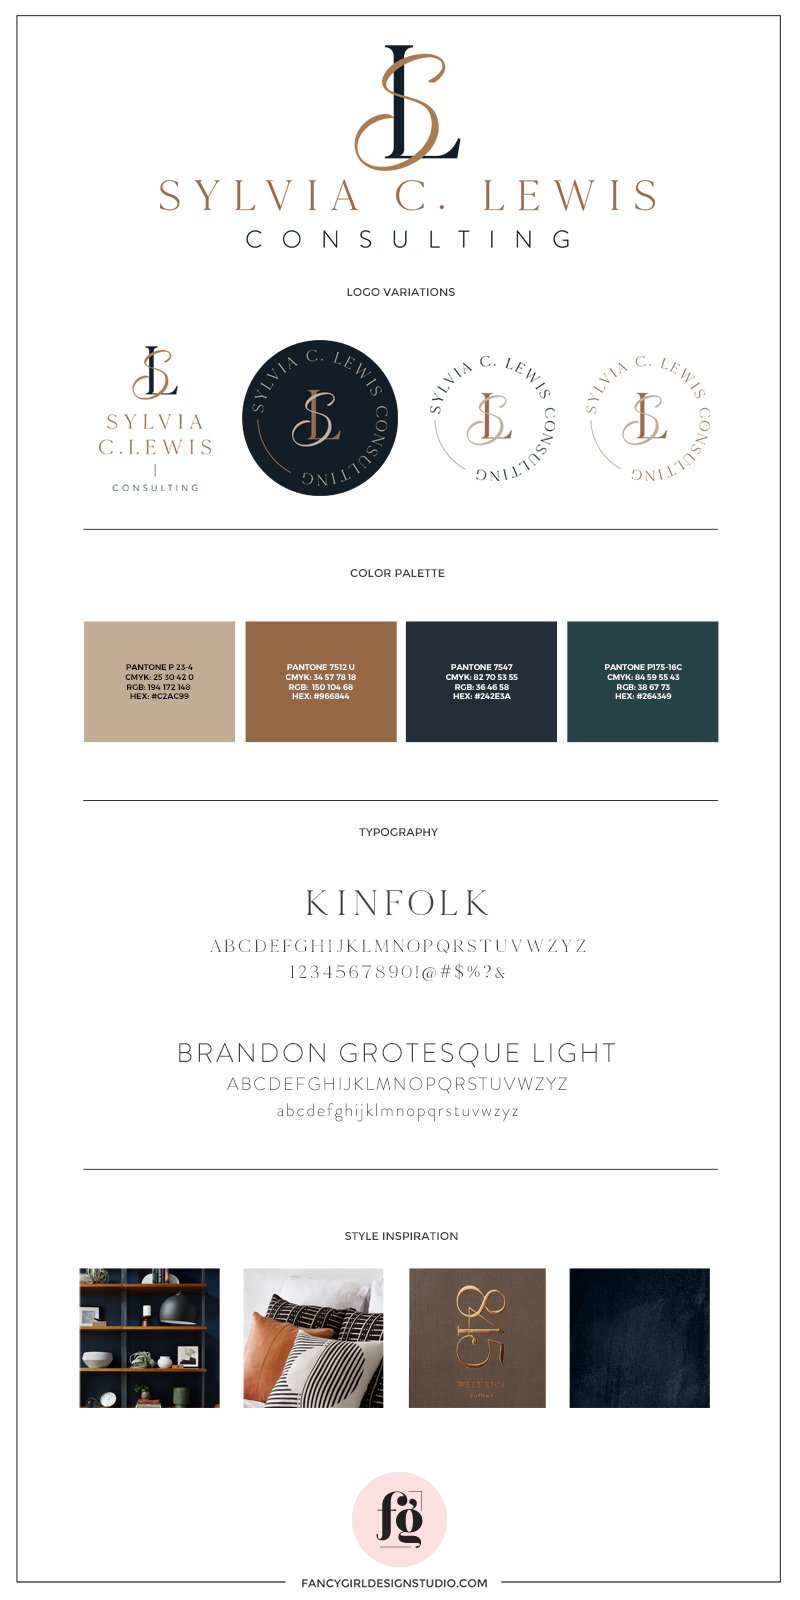 Brand Style Guide for Sylvia Lewis Consulting   showing logo variations, palette, typography, and style inspiration   warm, professional, nurturing